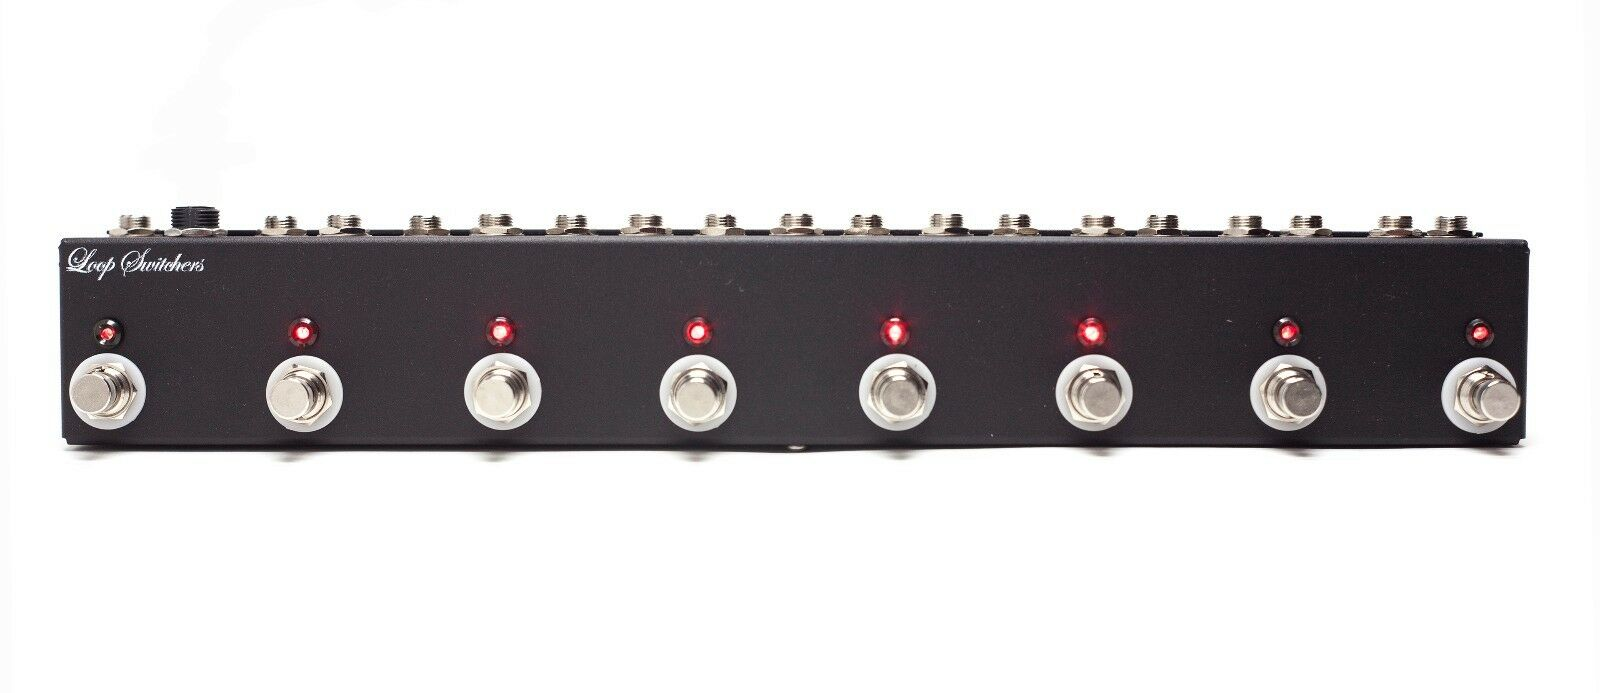 LOOP SWITCHERS 8 Channel True Bypass Switch Master Looper - $119.99 ...